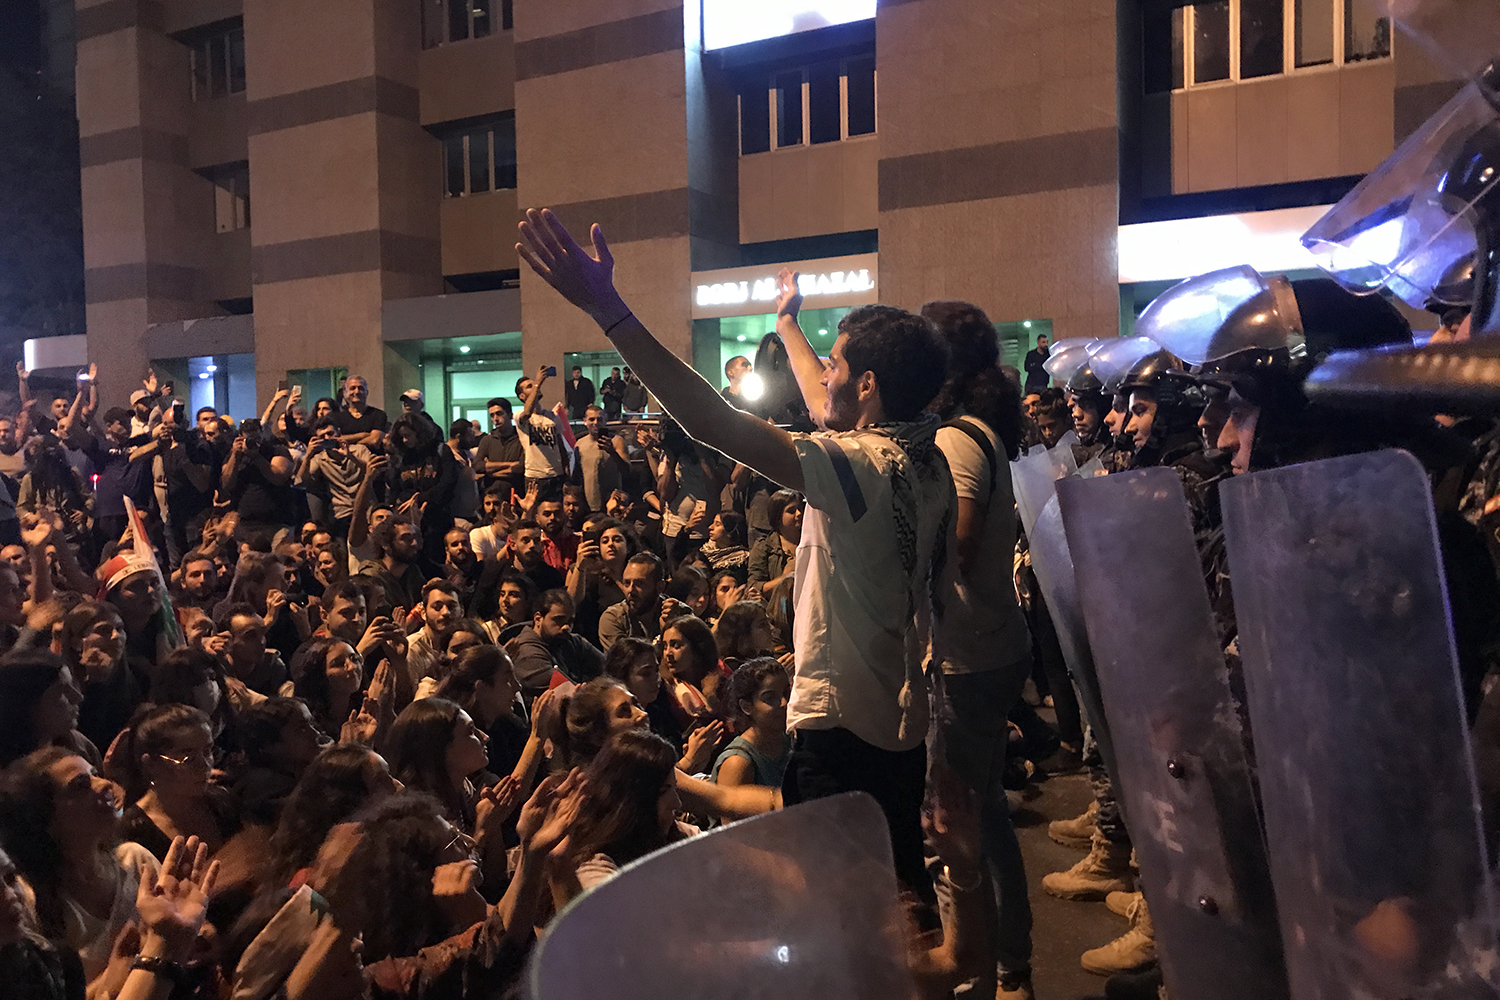 Ali Nourredine, a 25-year-old journalism graduate, leads a crowd of demonstrators blocking the Ring Road in chants, minutes before riot police attempted to disperse the roadblock on Oct. 31.